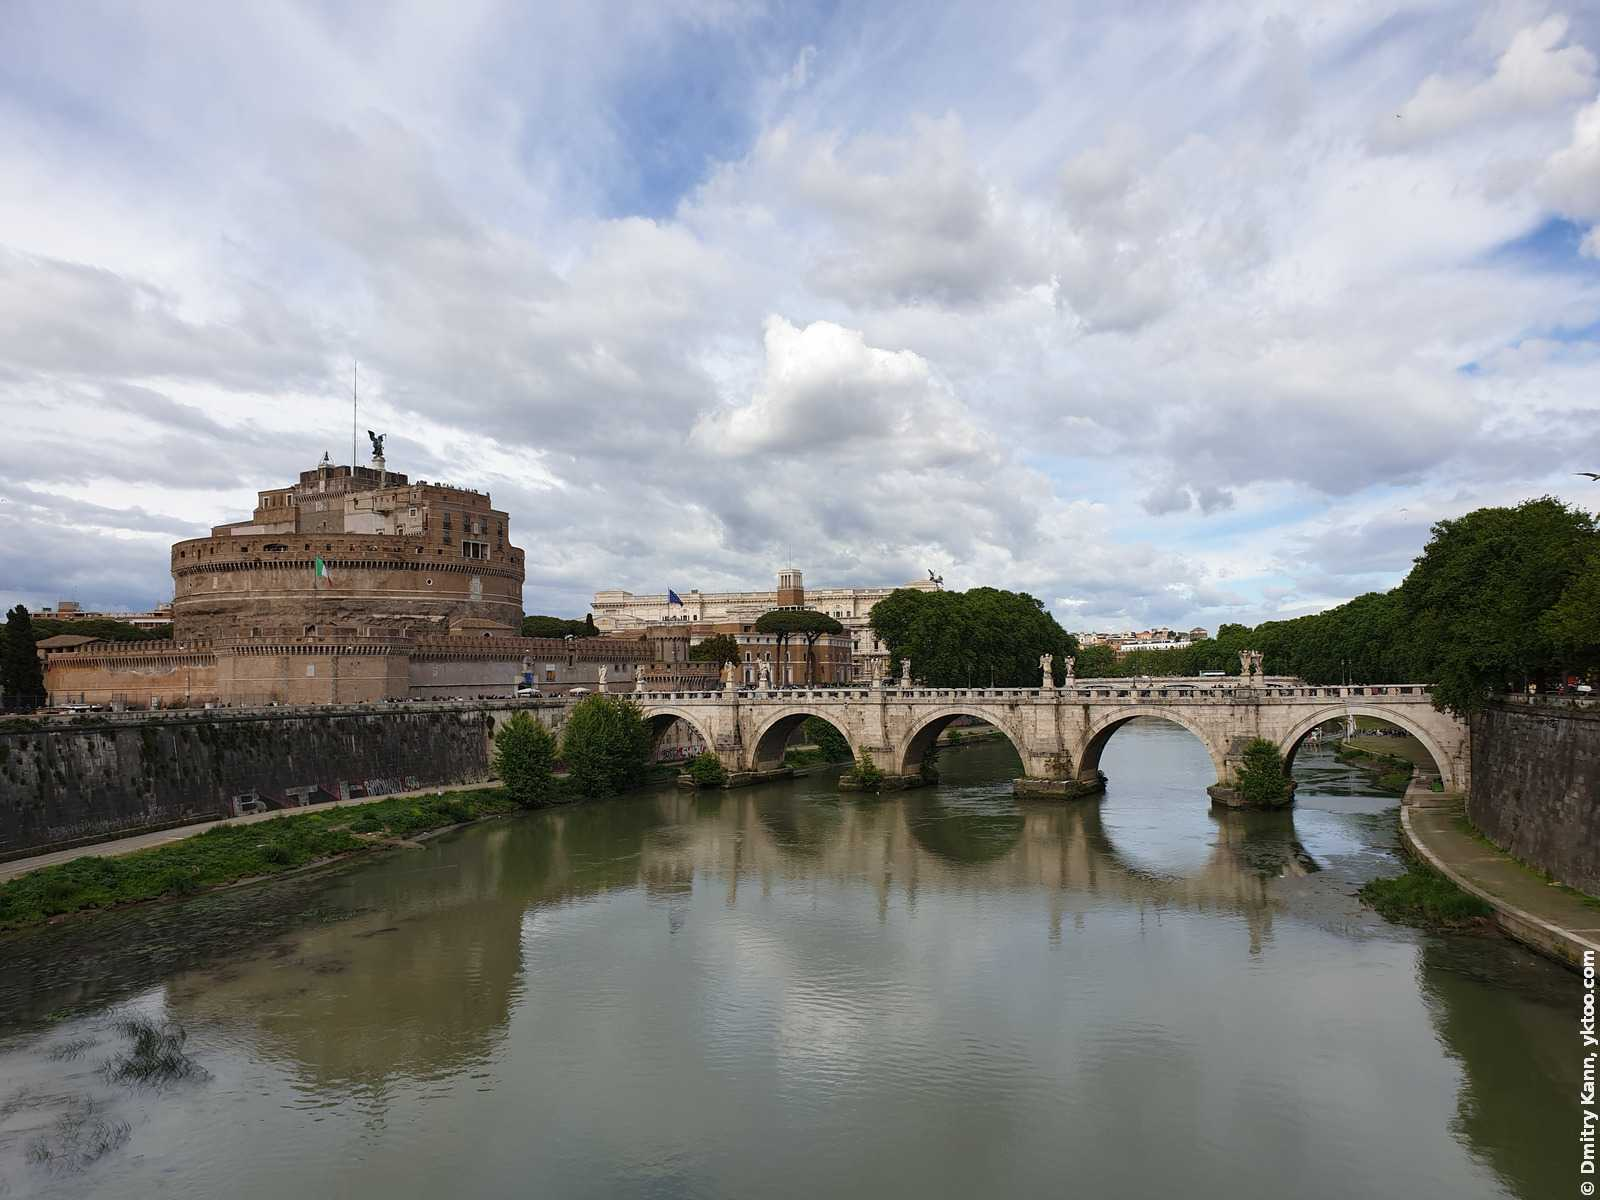 Rome, Italy. The Tiber river.